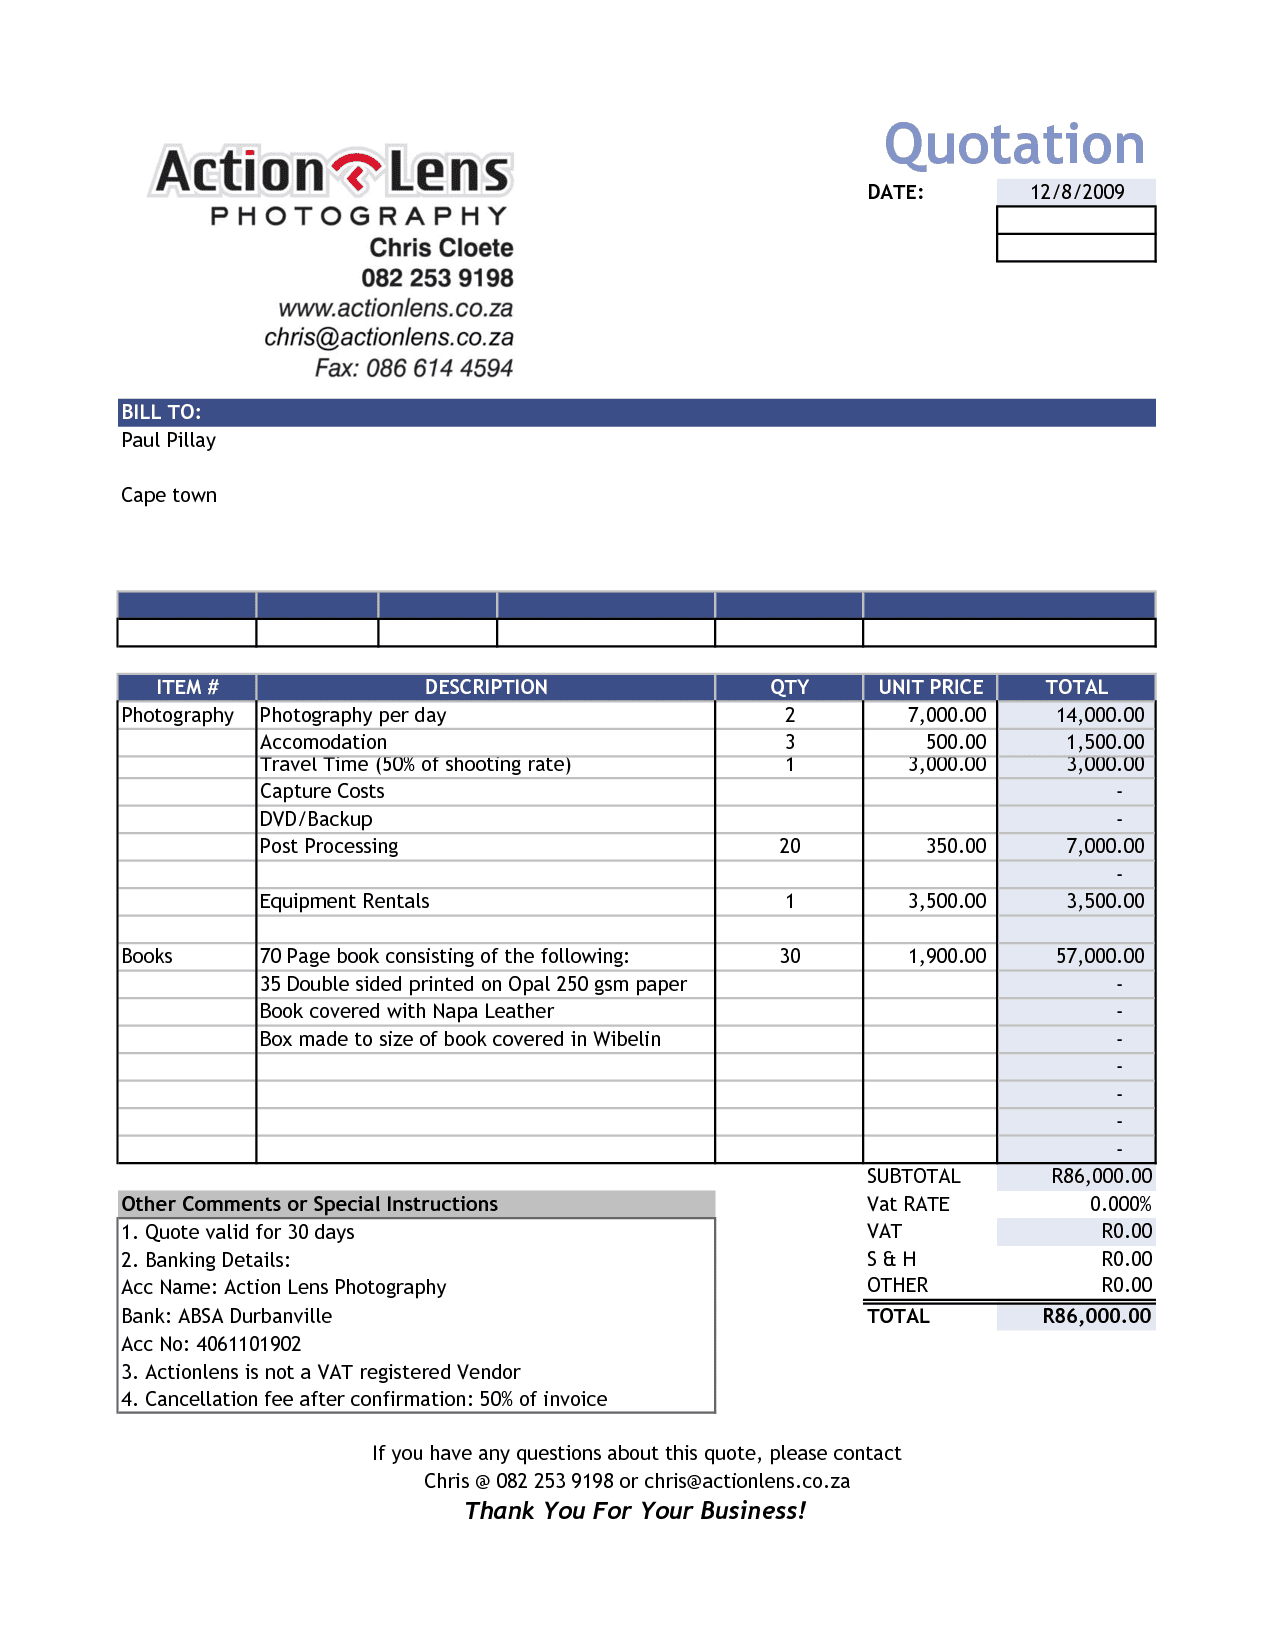 Free Photography Invoice Template Invoice Template Excel Free Download Spreadsheet Templates for Busines Spreadsheet Templates for Busines Invoice Template Excel 2010